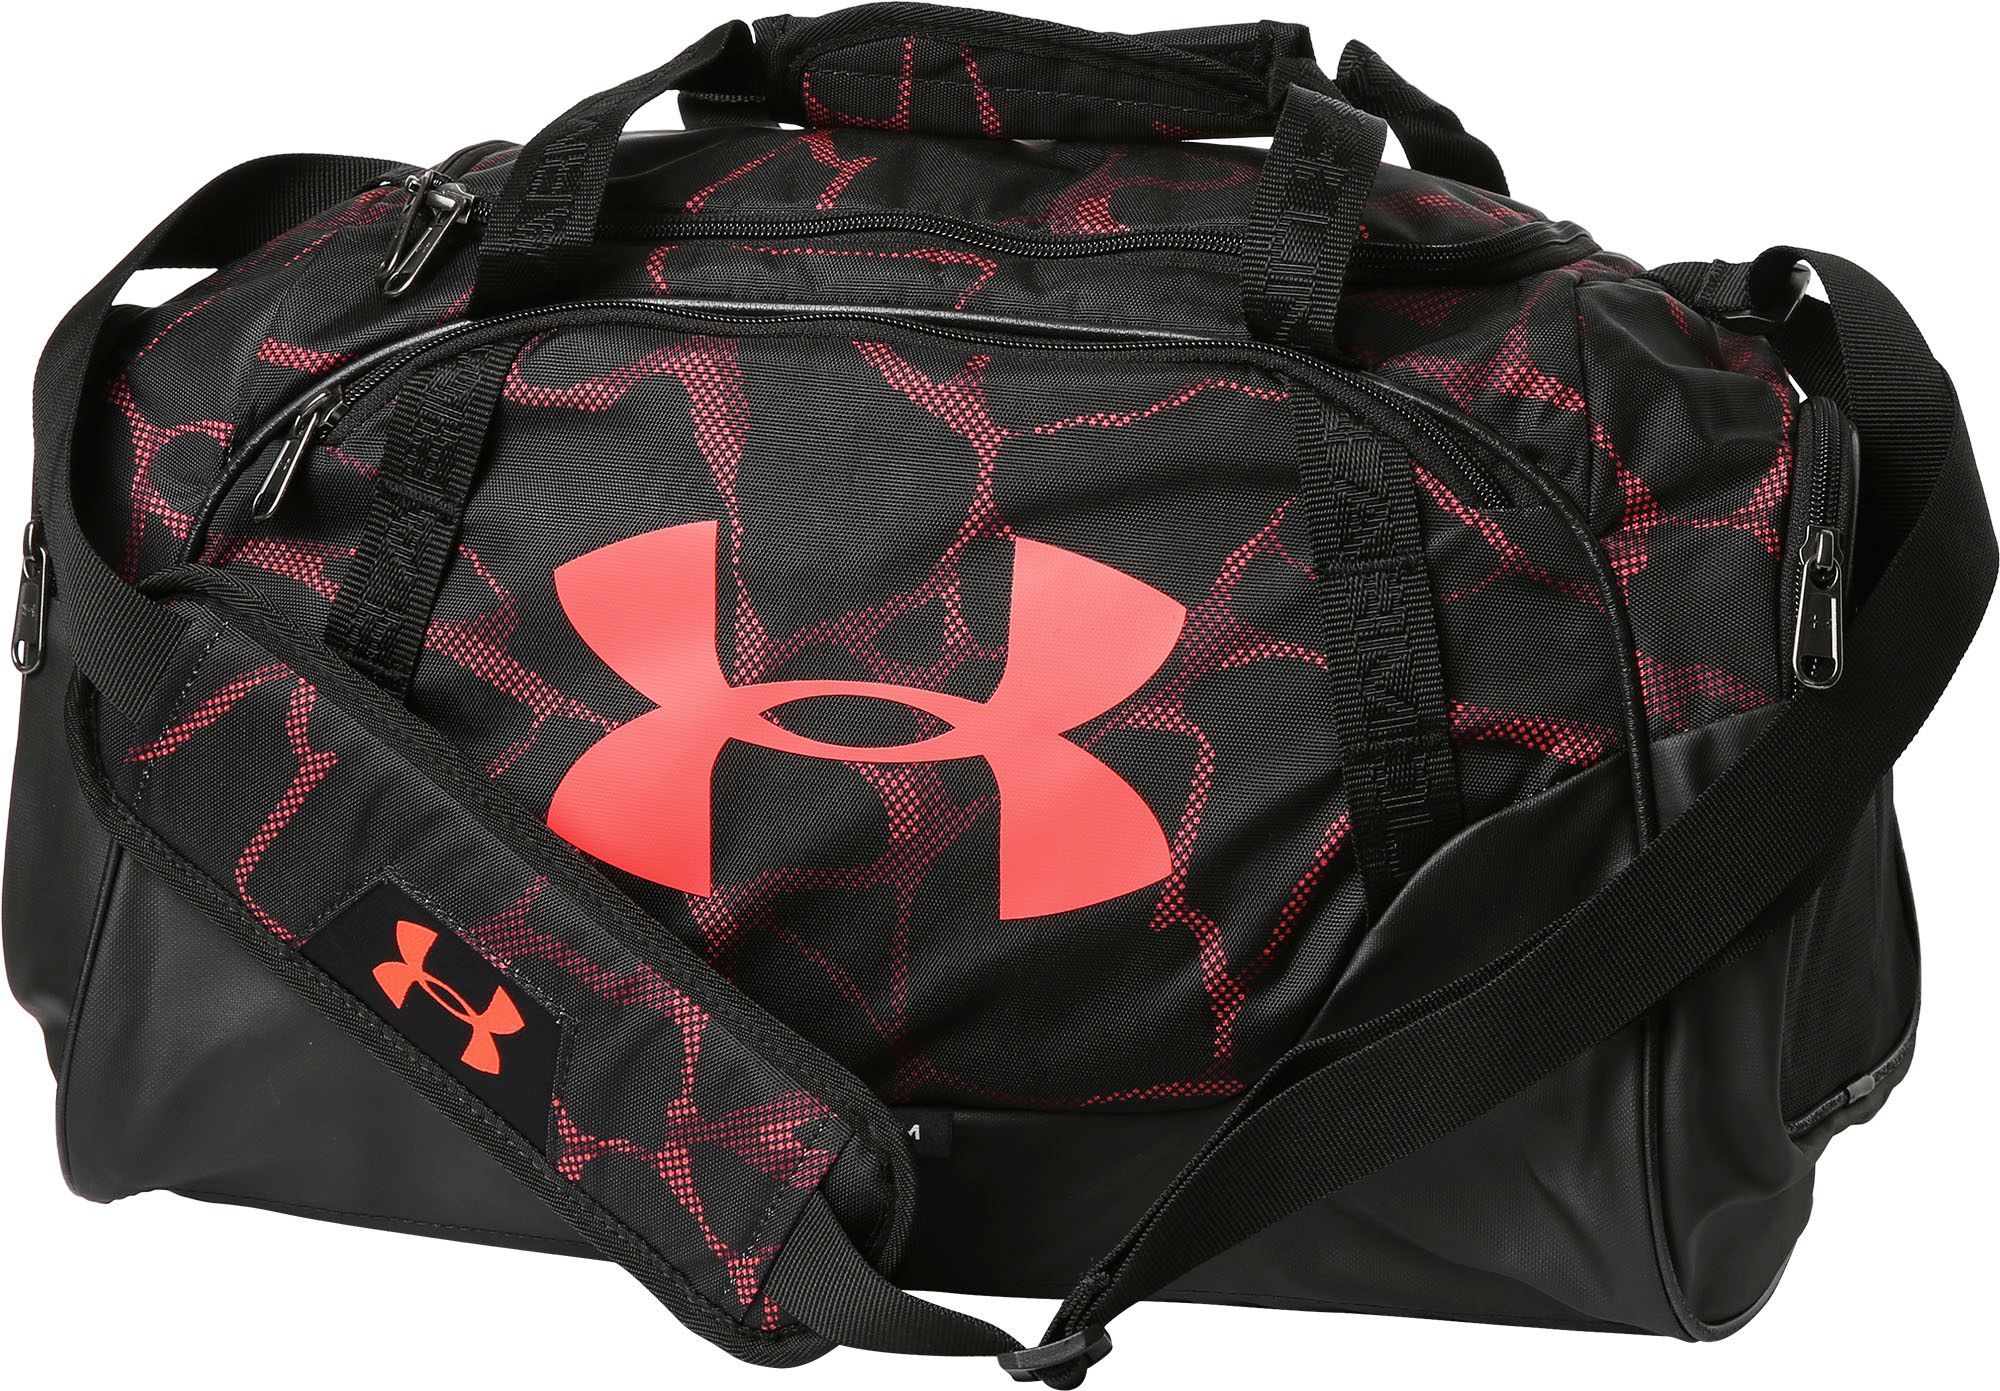 Product Image Under Armour Undeniable 30 XS Duffle Bag